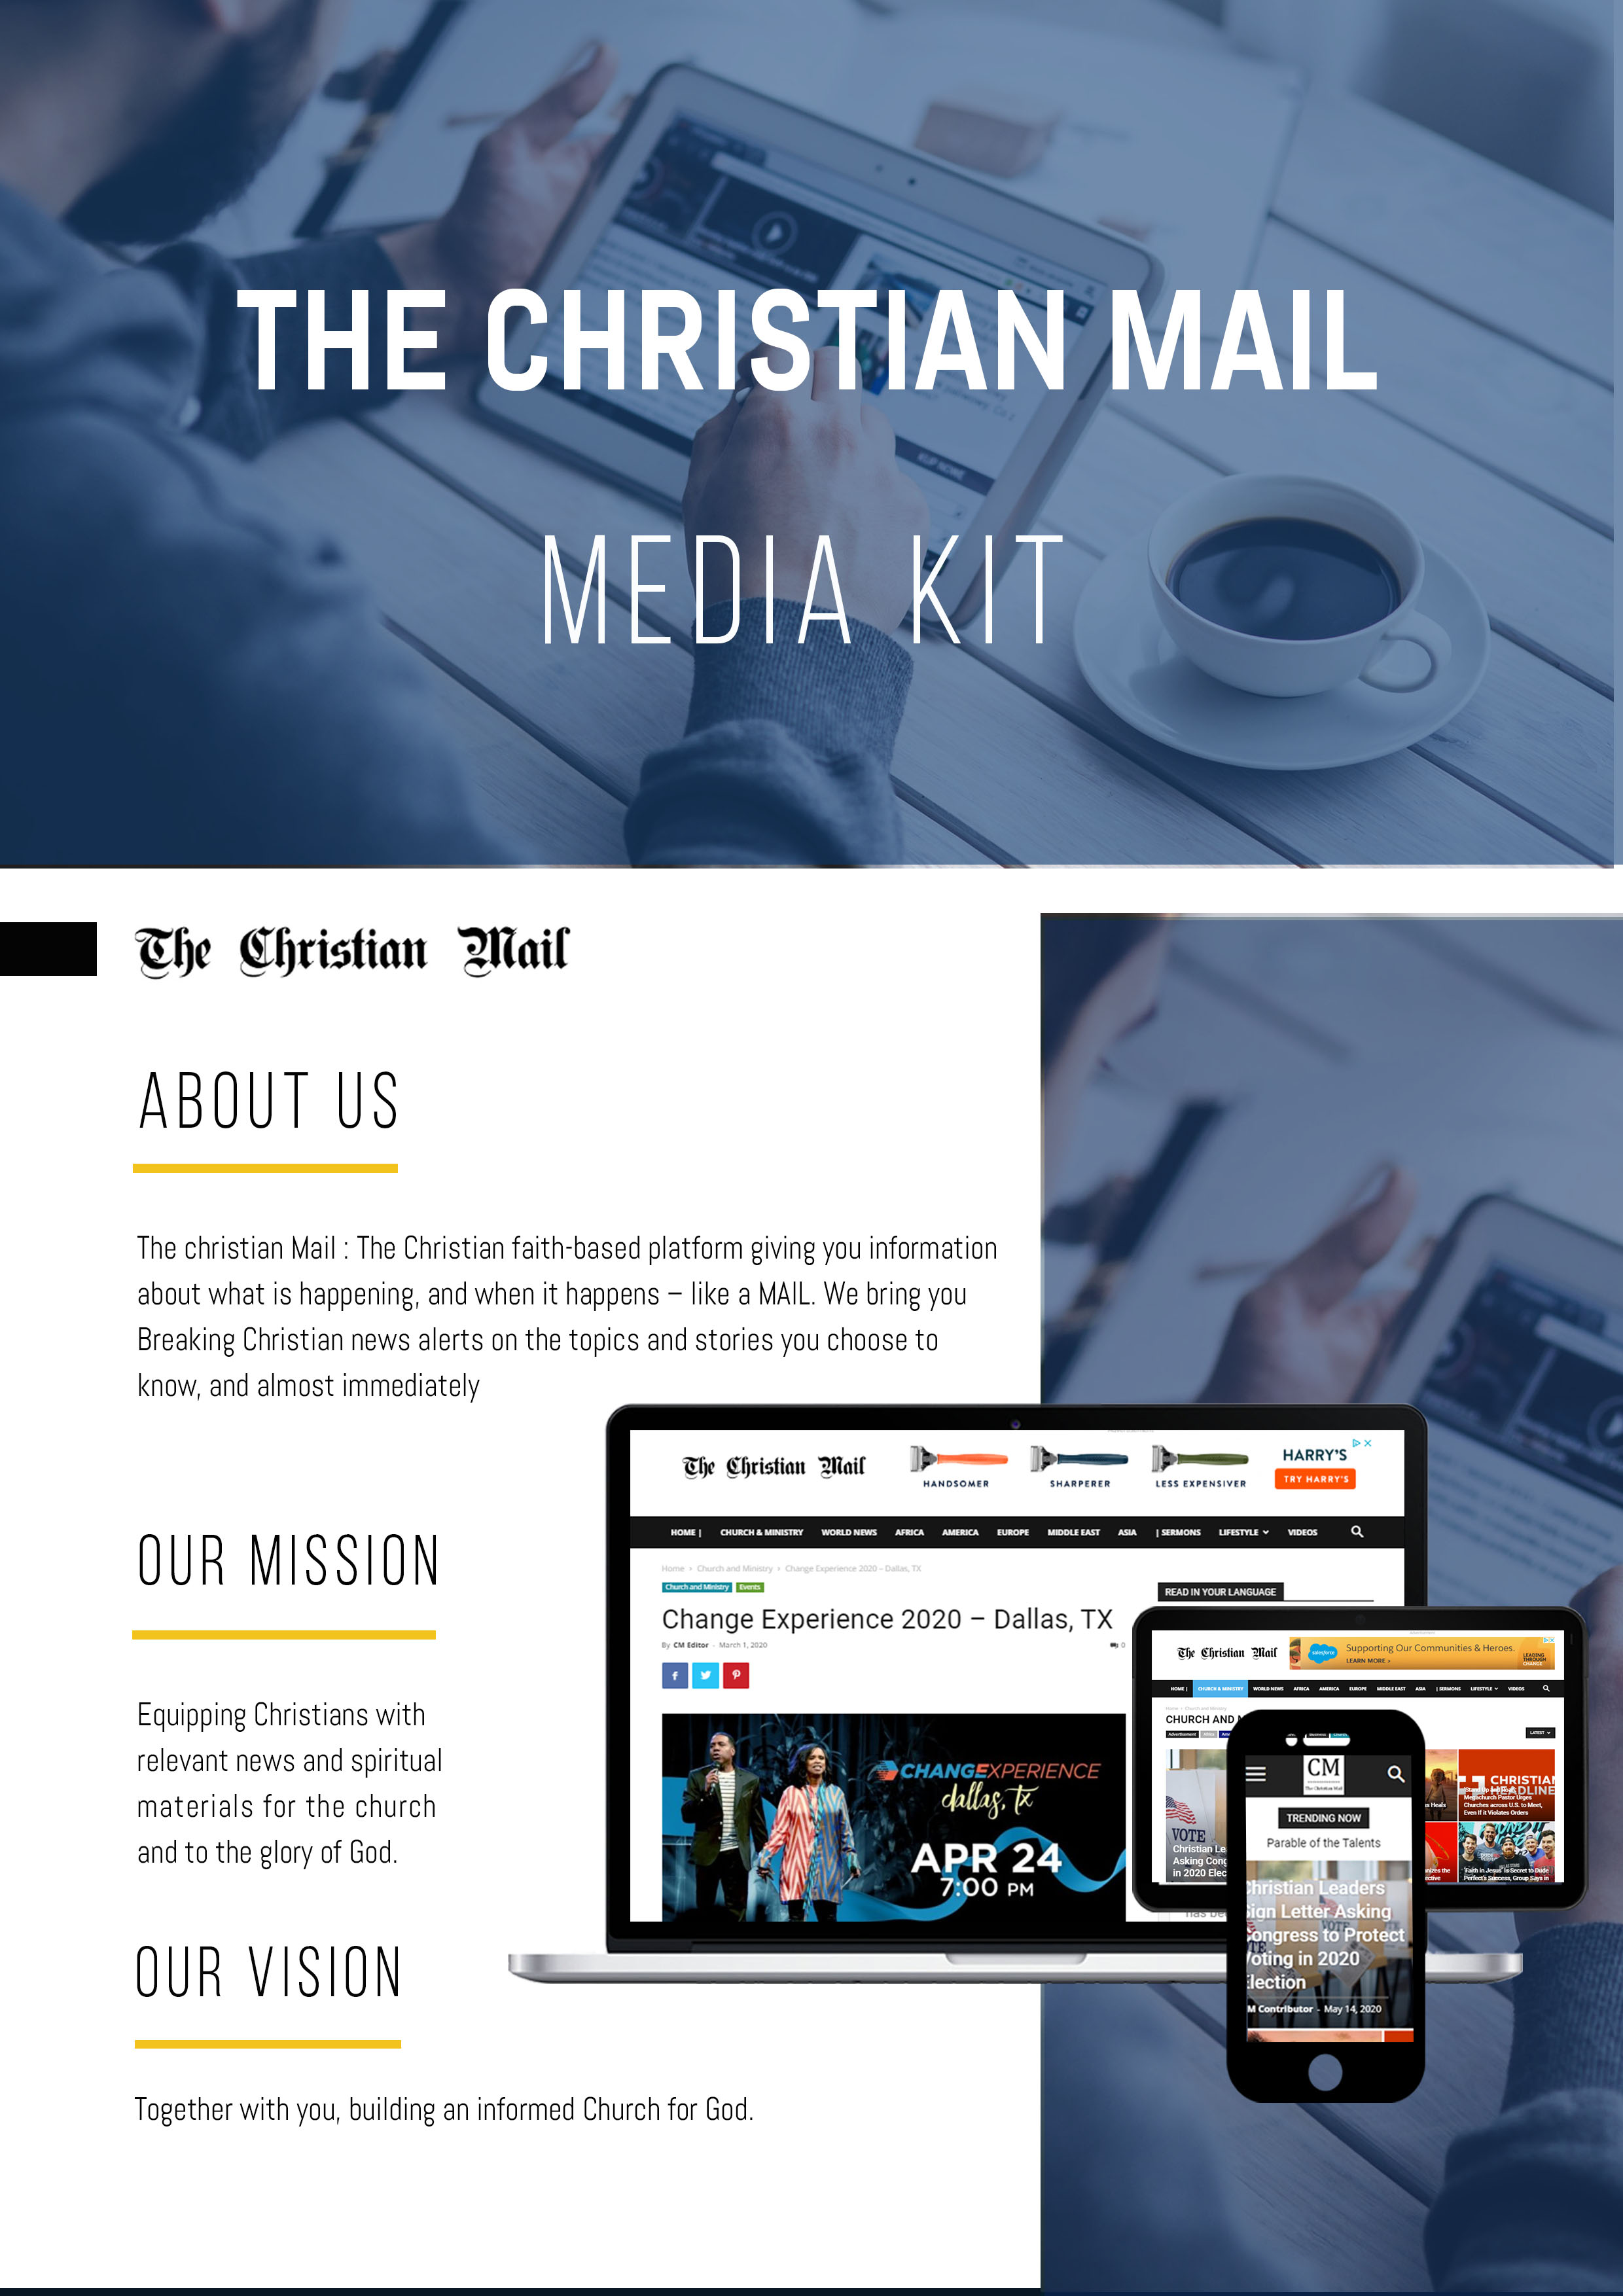 Advertising in The Christian Mail